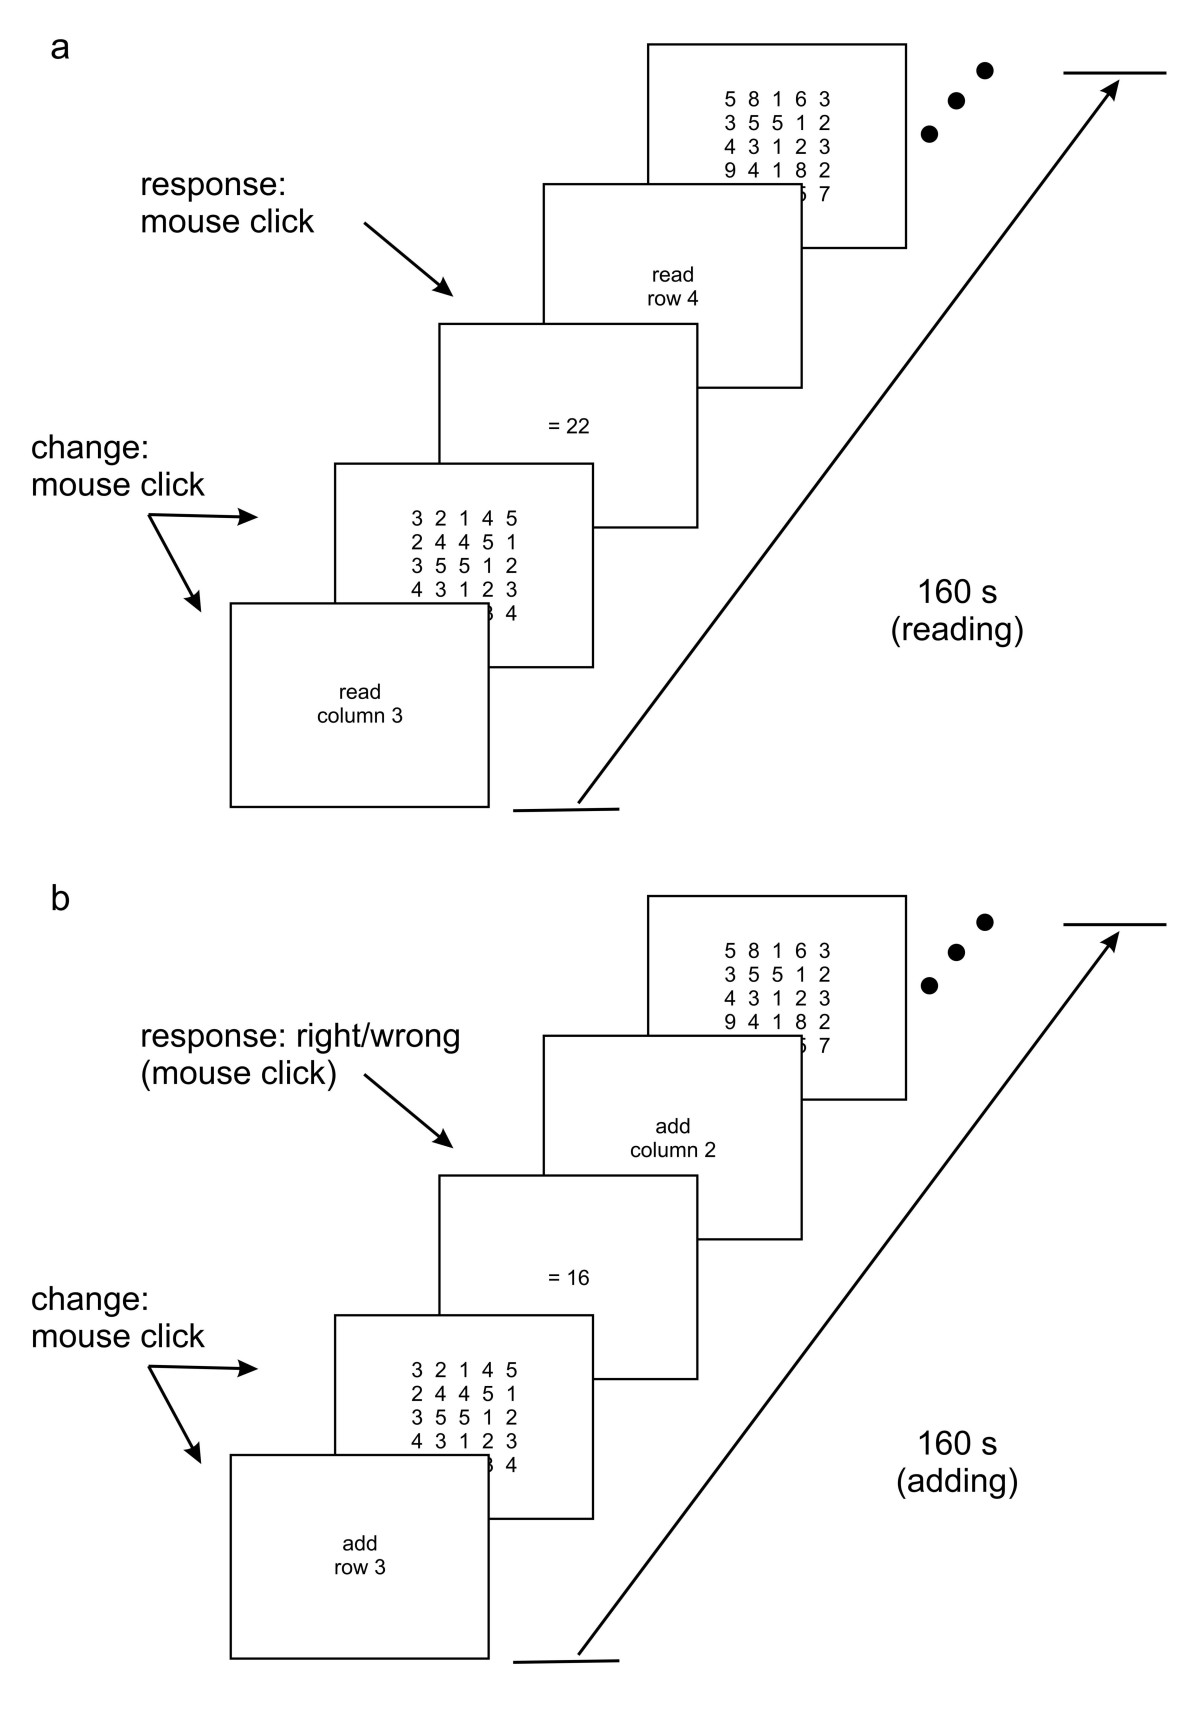 https://static-content.springer.com/image/art%3A10.1186%2F1477-5751-7-6/MediaObjects/12952_2008_Article_61_Fig1_HTML.jpg